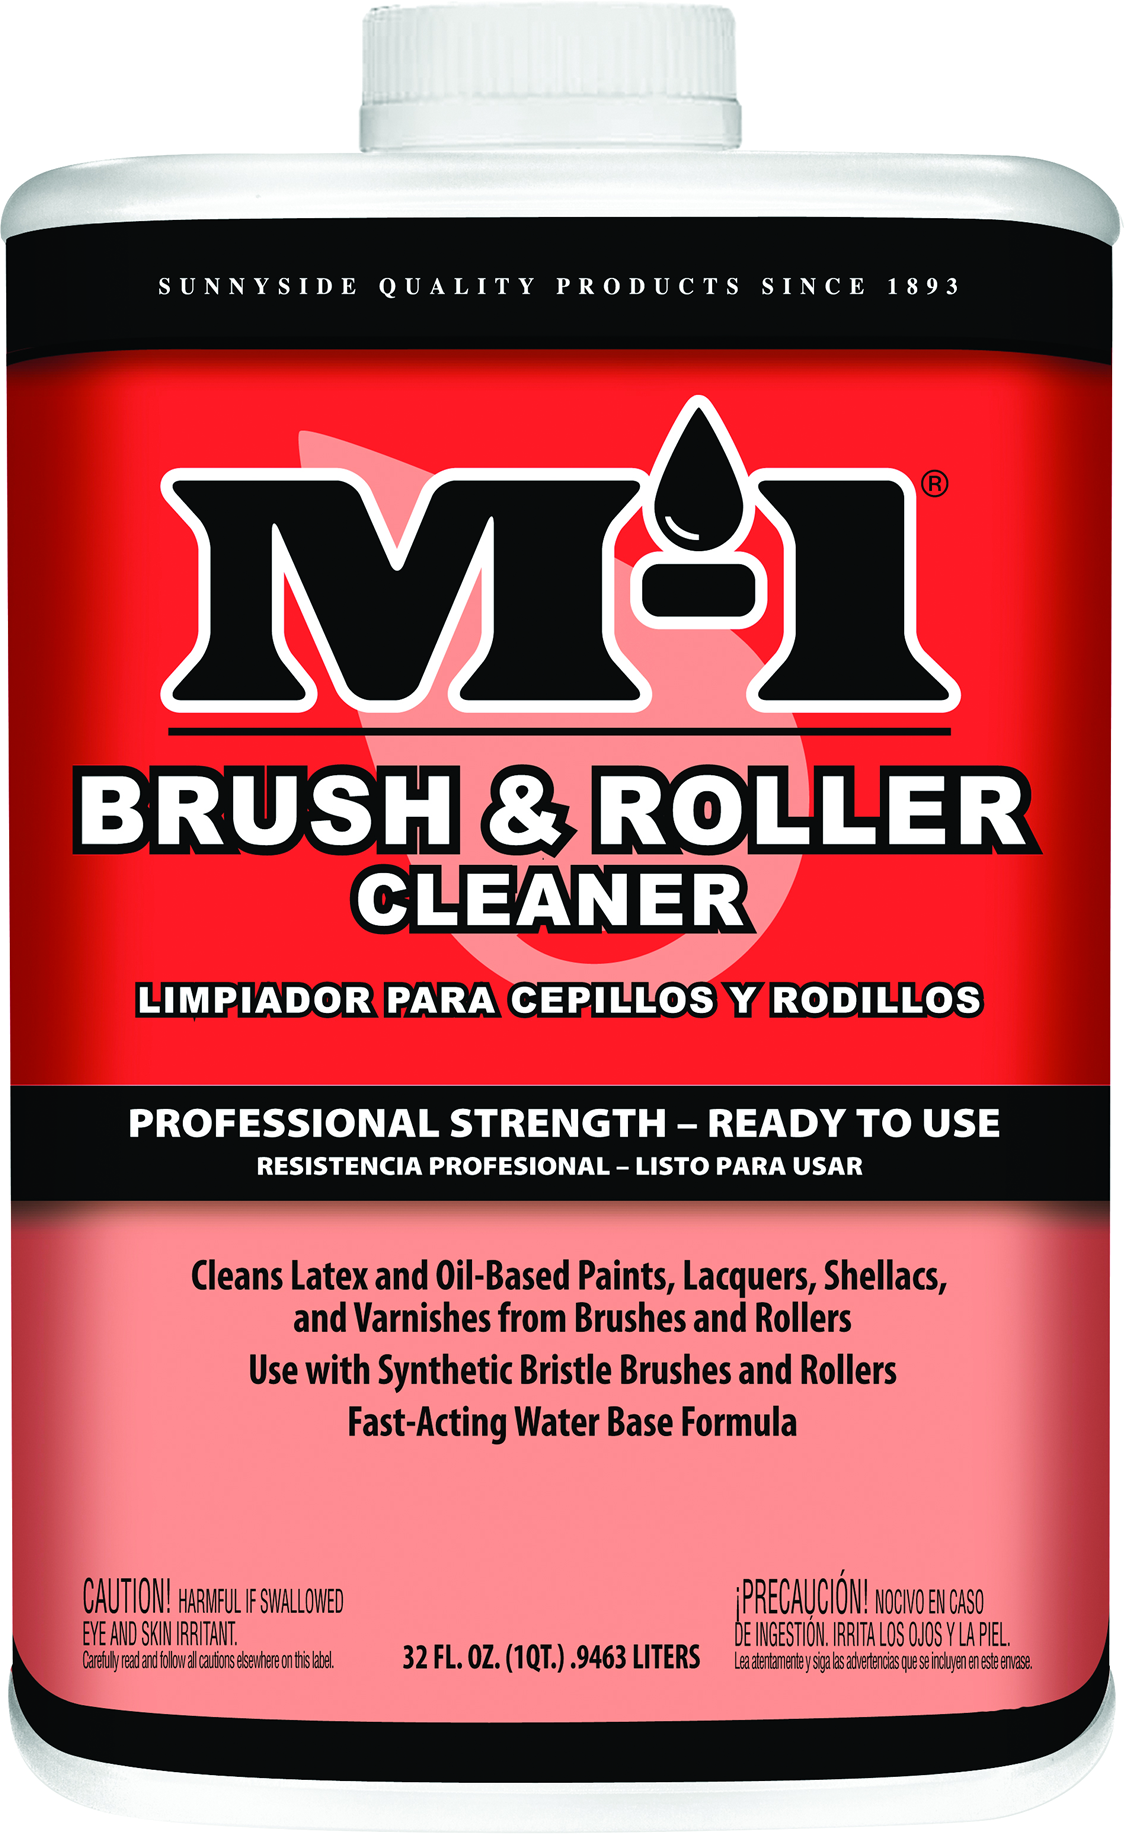 M-1 BRUSH & ROLLER CLEANER READY TO USE Product Image